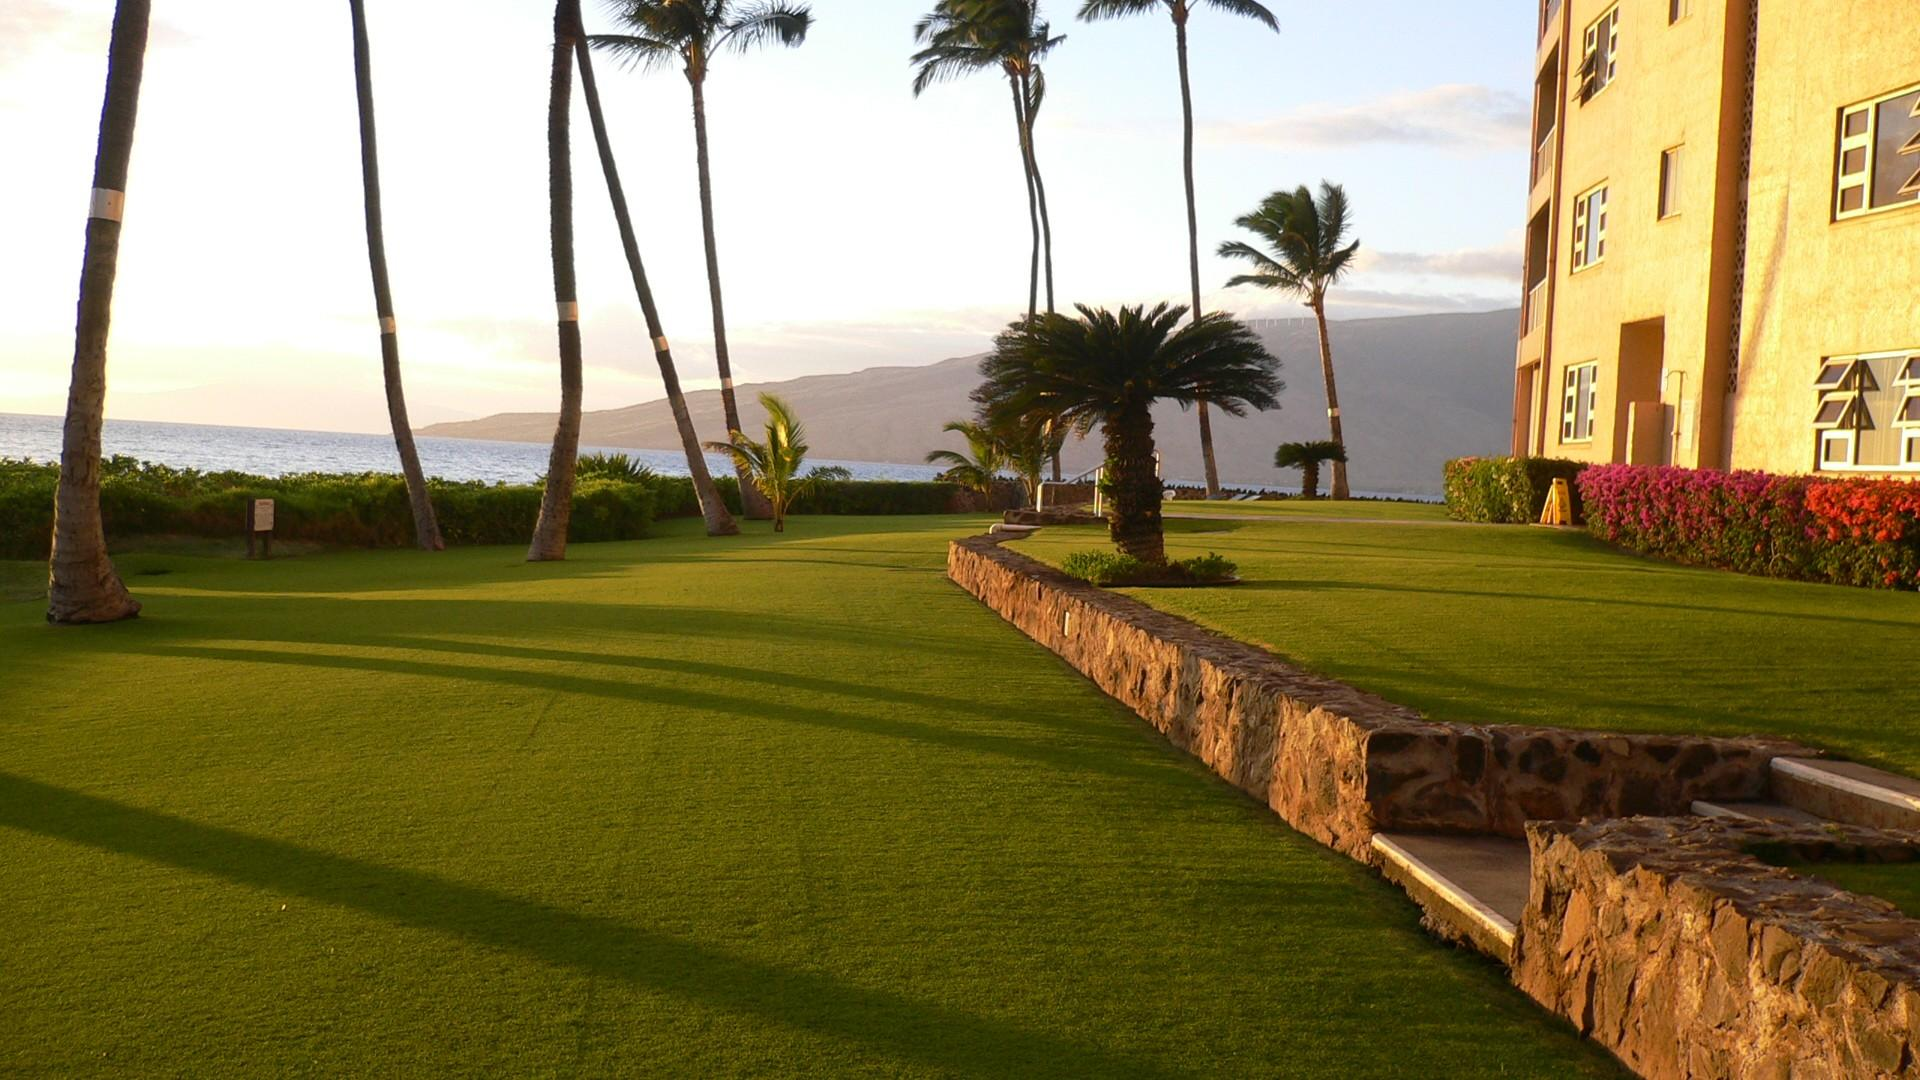 Alternate view, looking toward the West Maui Mountains.